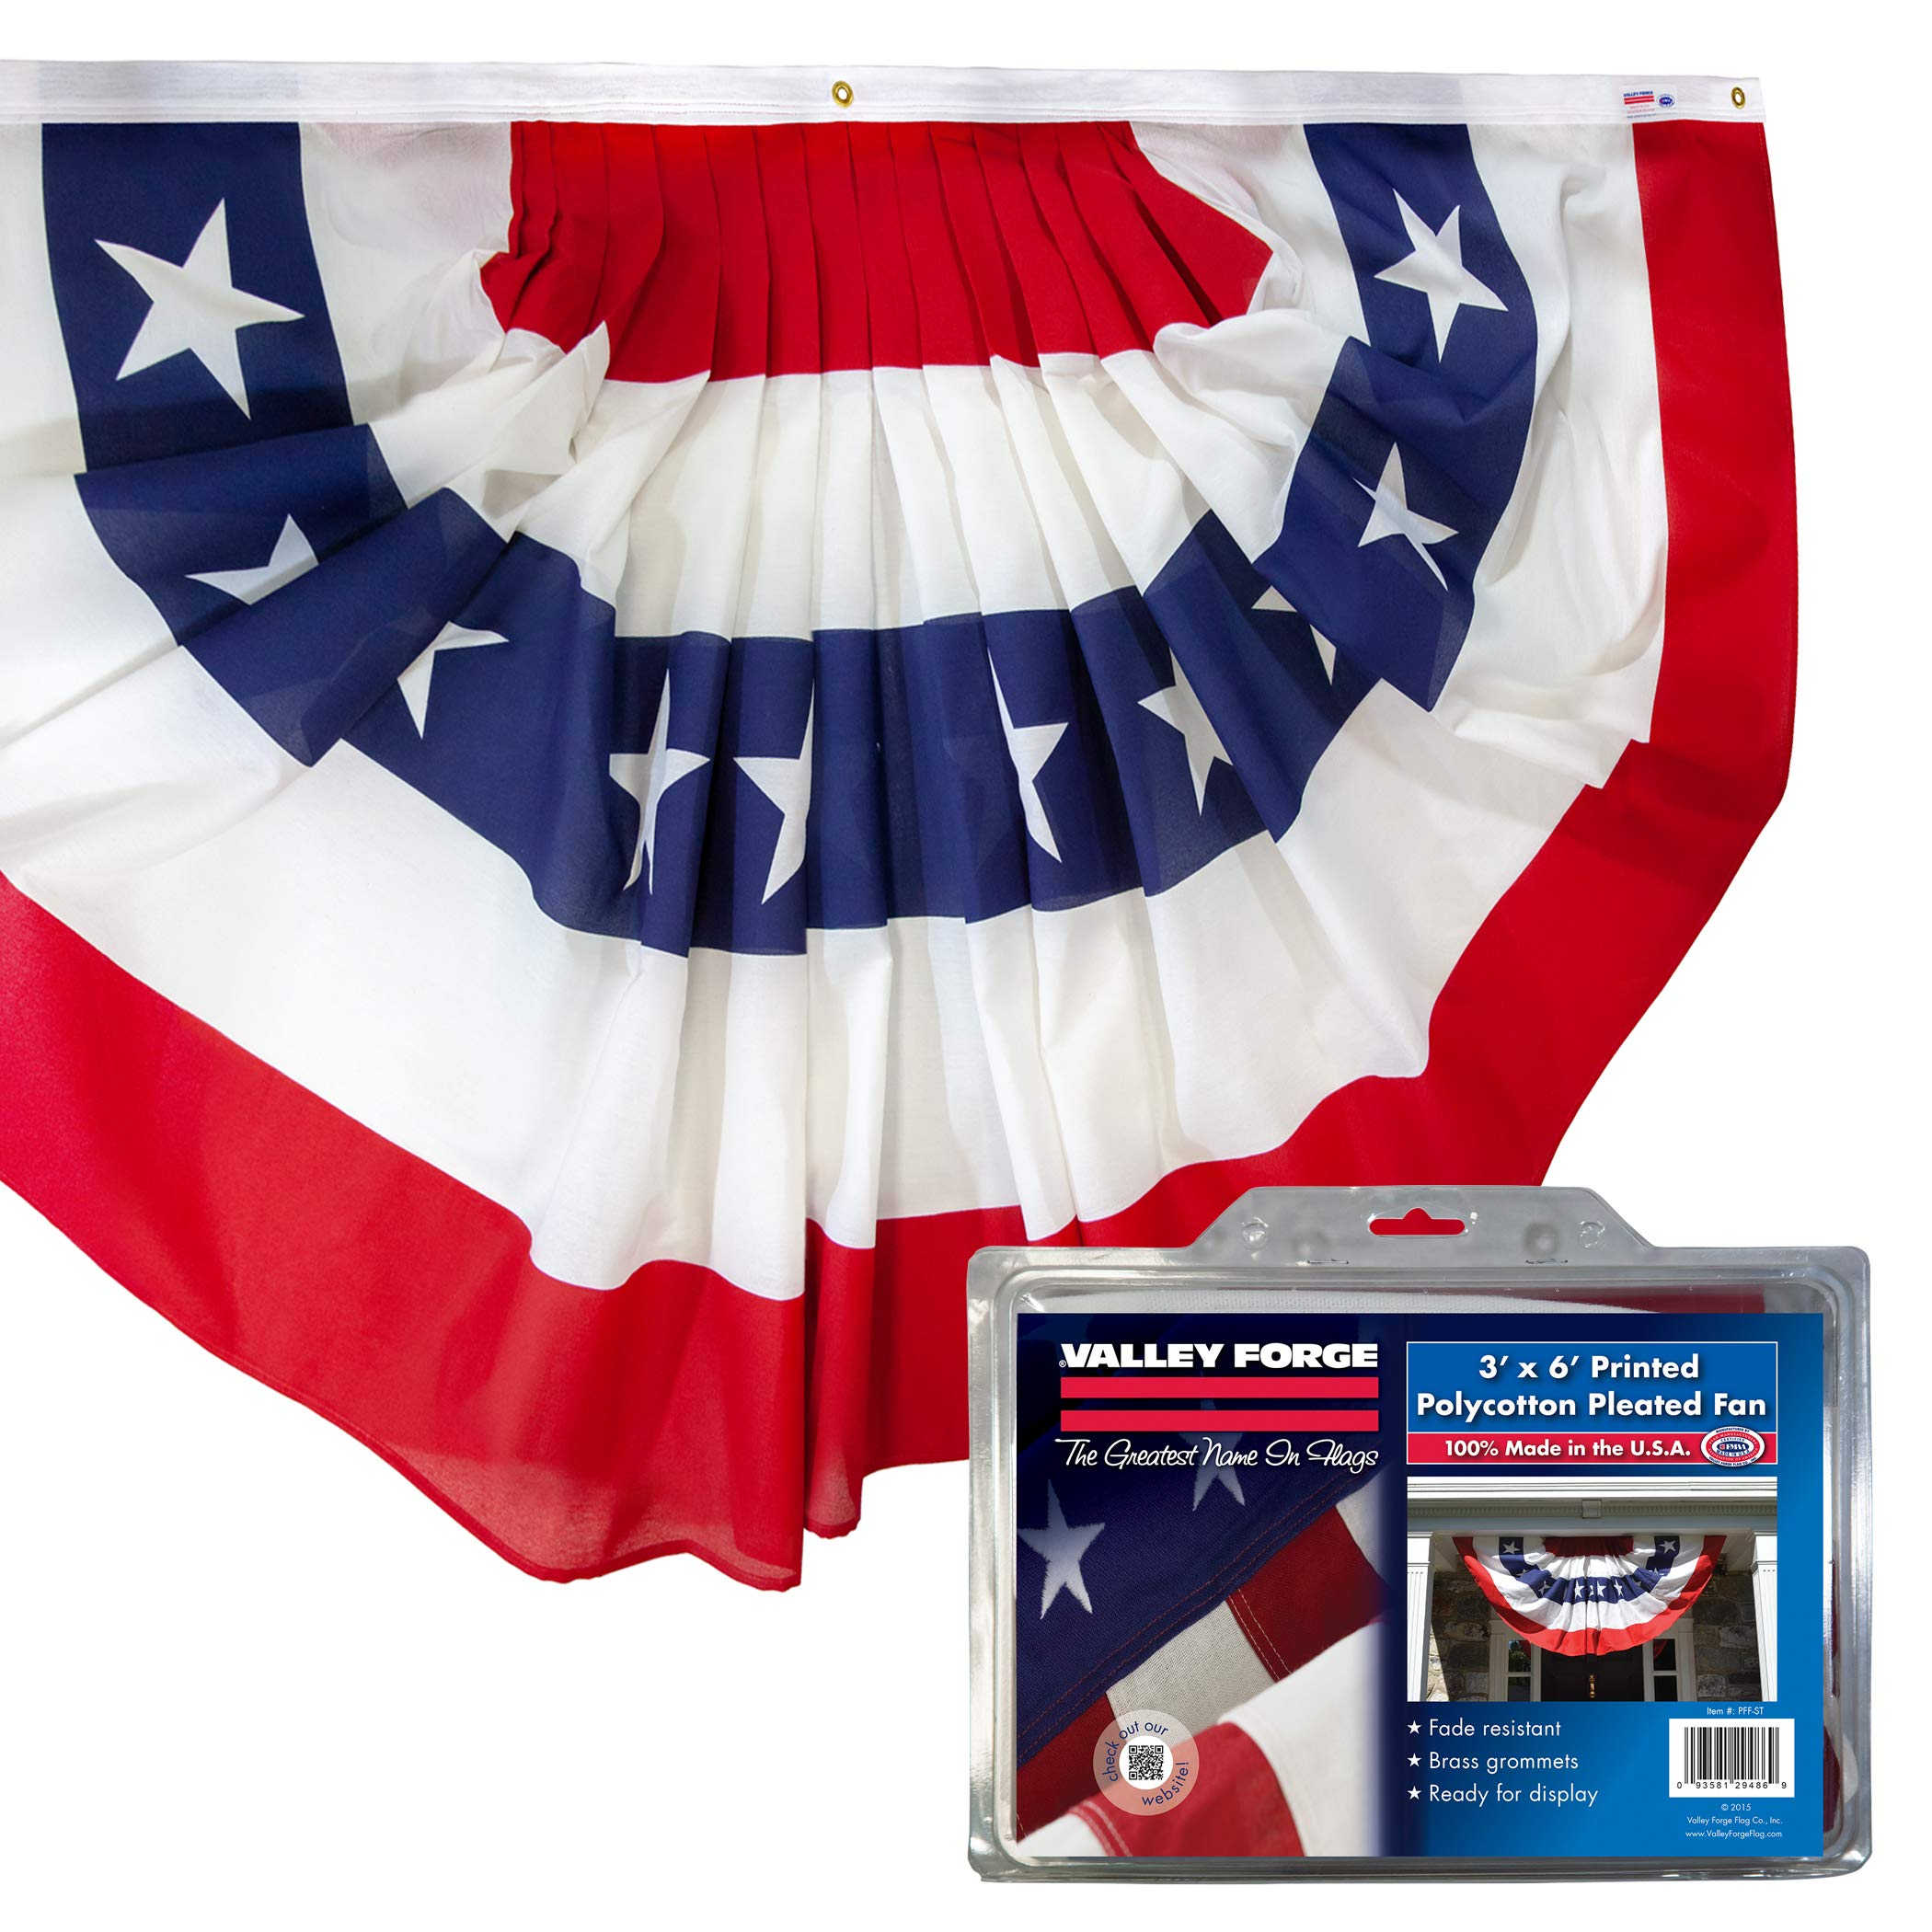 Valley Forge American Fan Flag 3' x 6' Polycotton Sentinel 100% Made In U.S.A. Stars and Stripes Bunting Canvas Header Brass Grommets Model 36636010-5-S by Sentinel